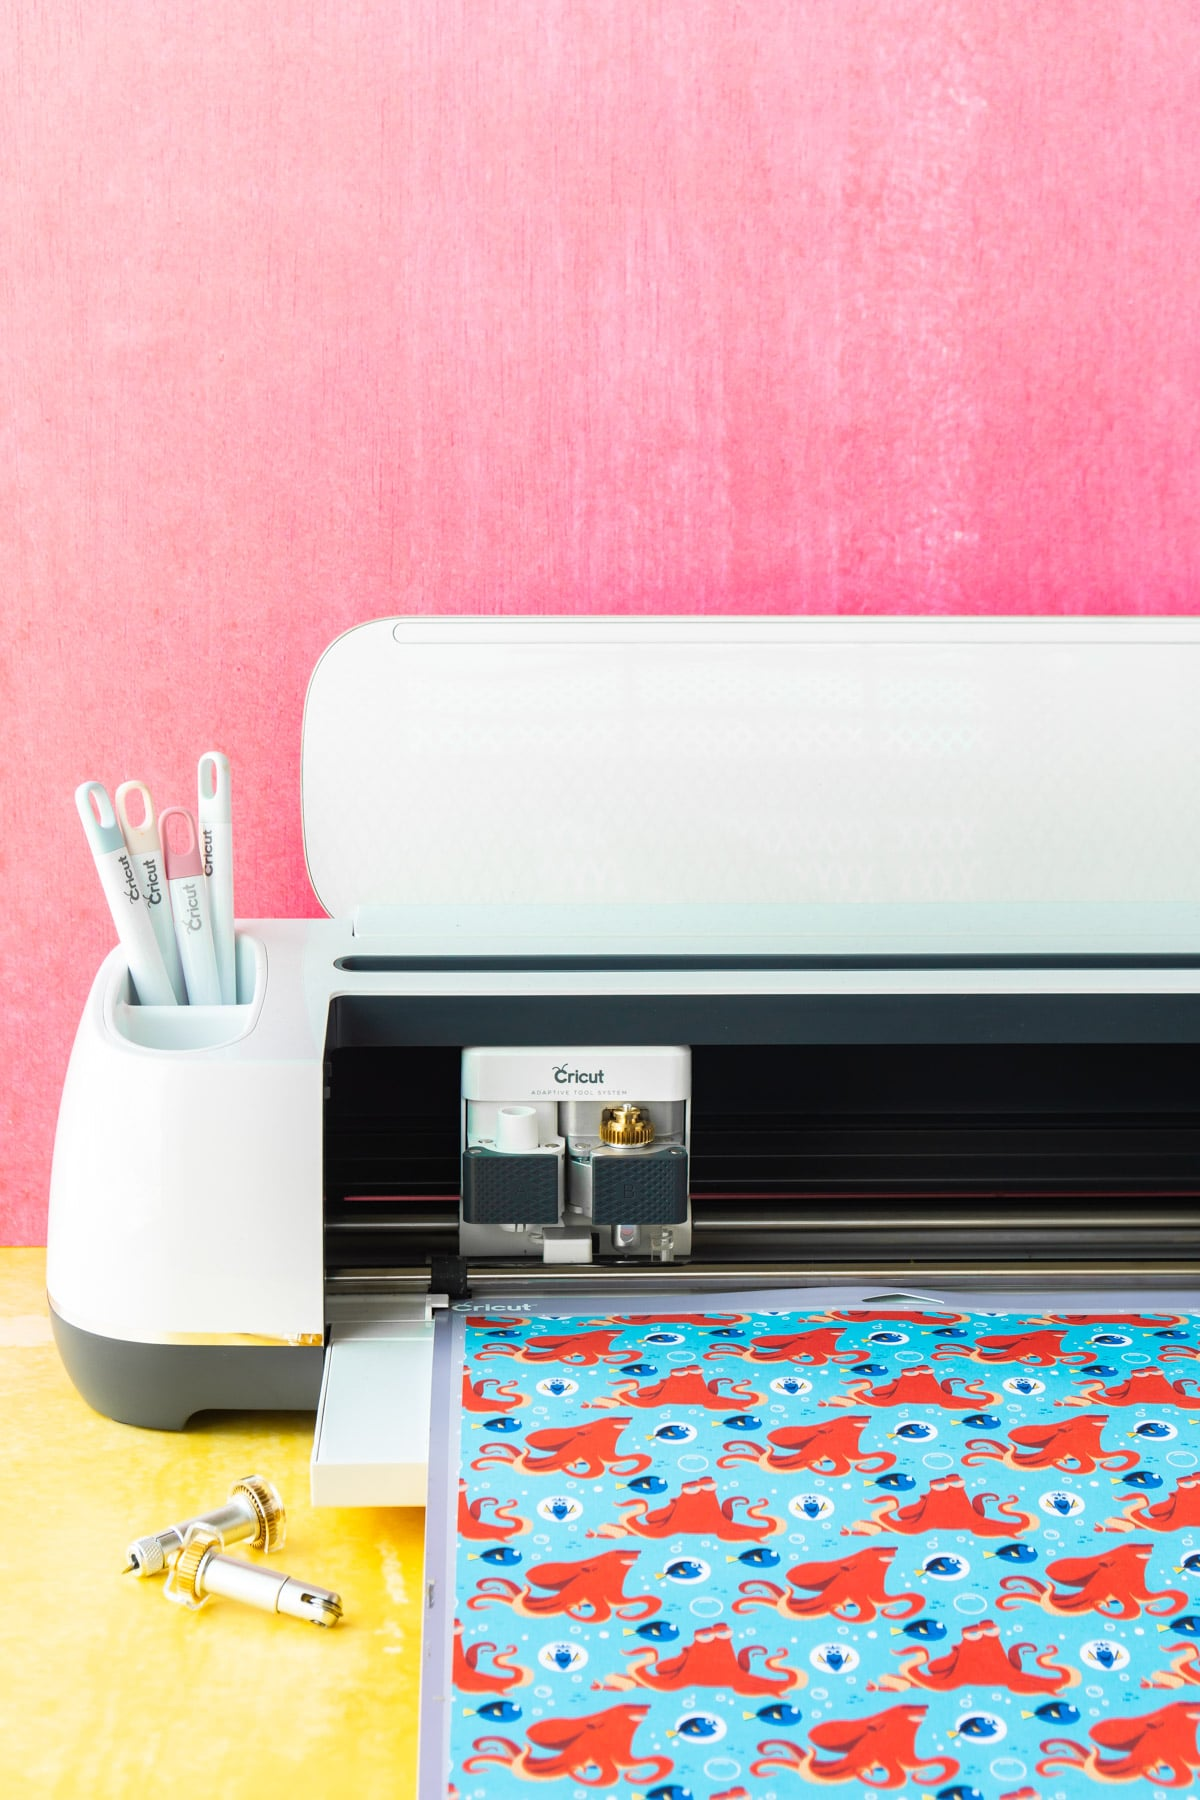 Cricut Maker on a yellow table with a pink background